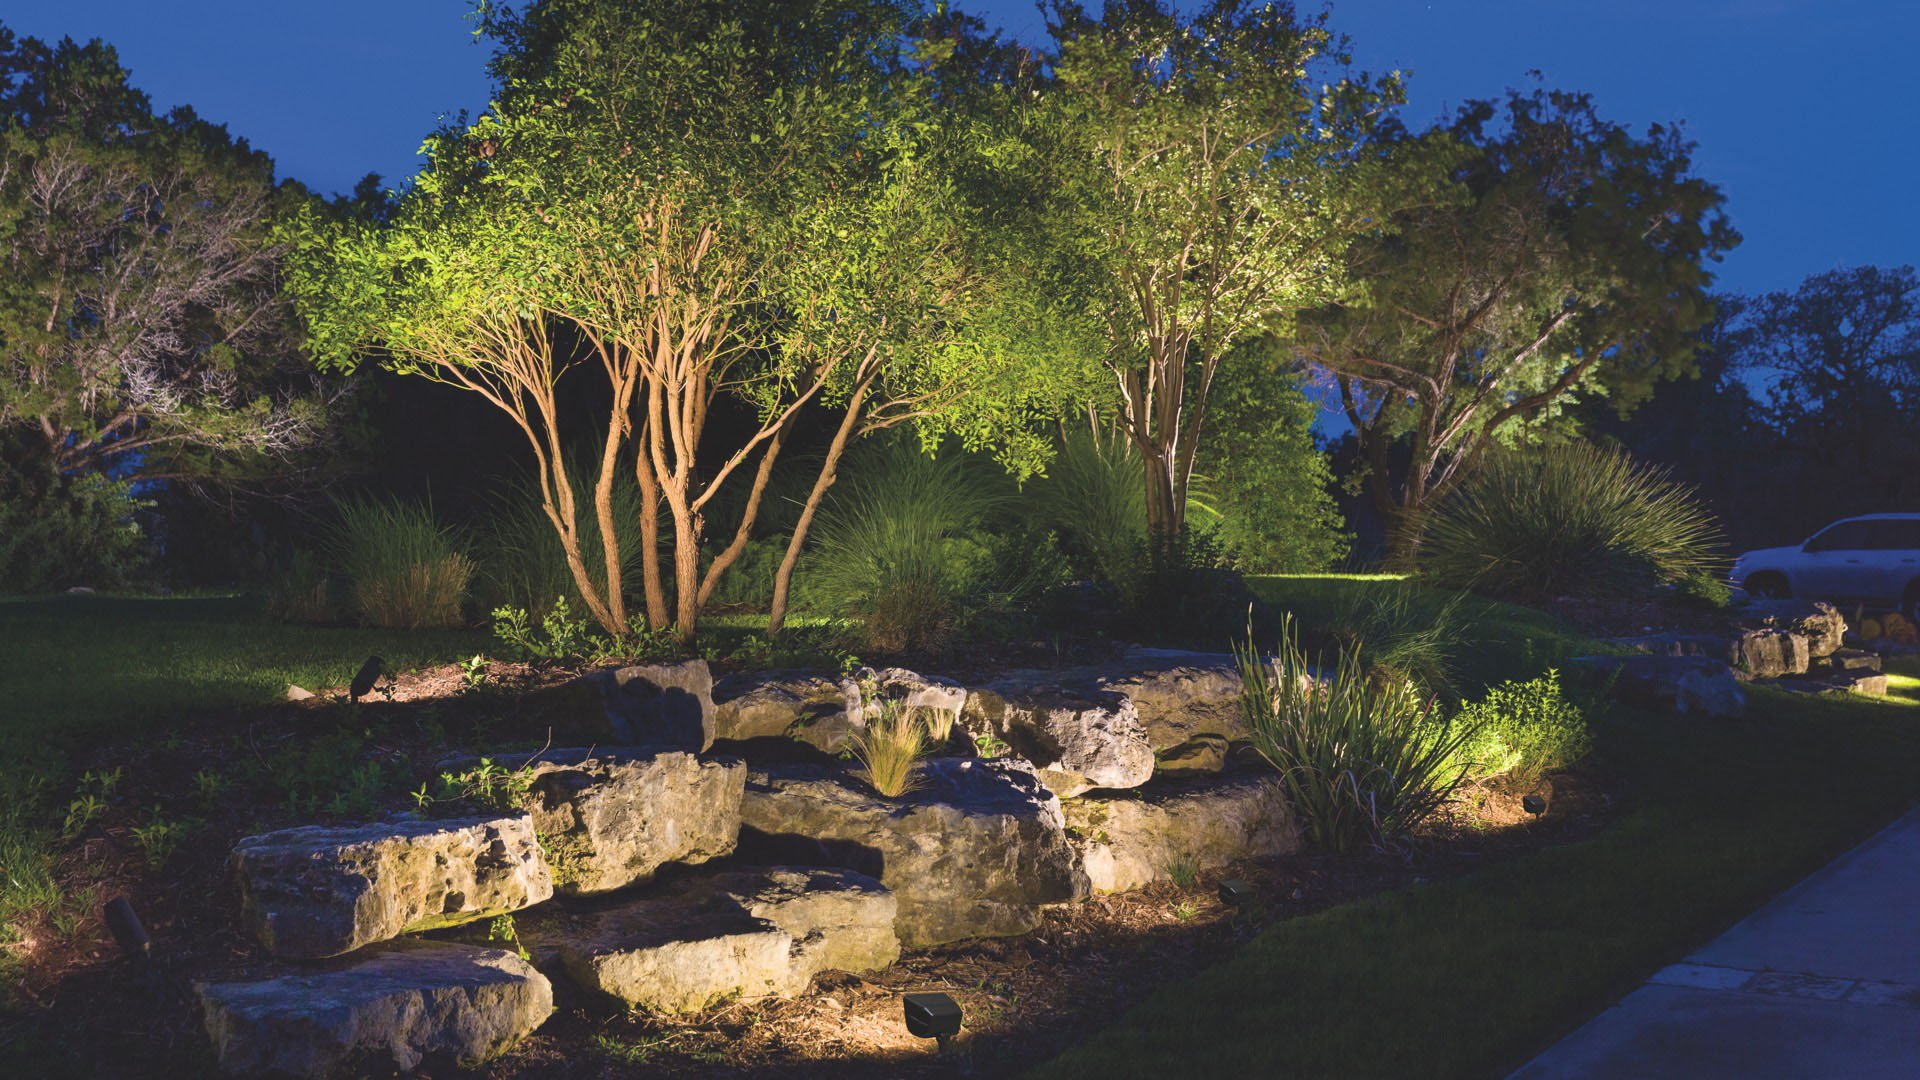 Outdoor Landscape Lighting – Hardscape, Path Lighting  Deck Lighting  Kichler Lighting